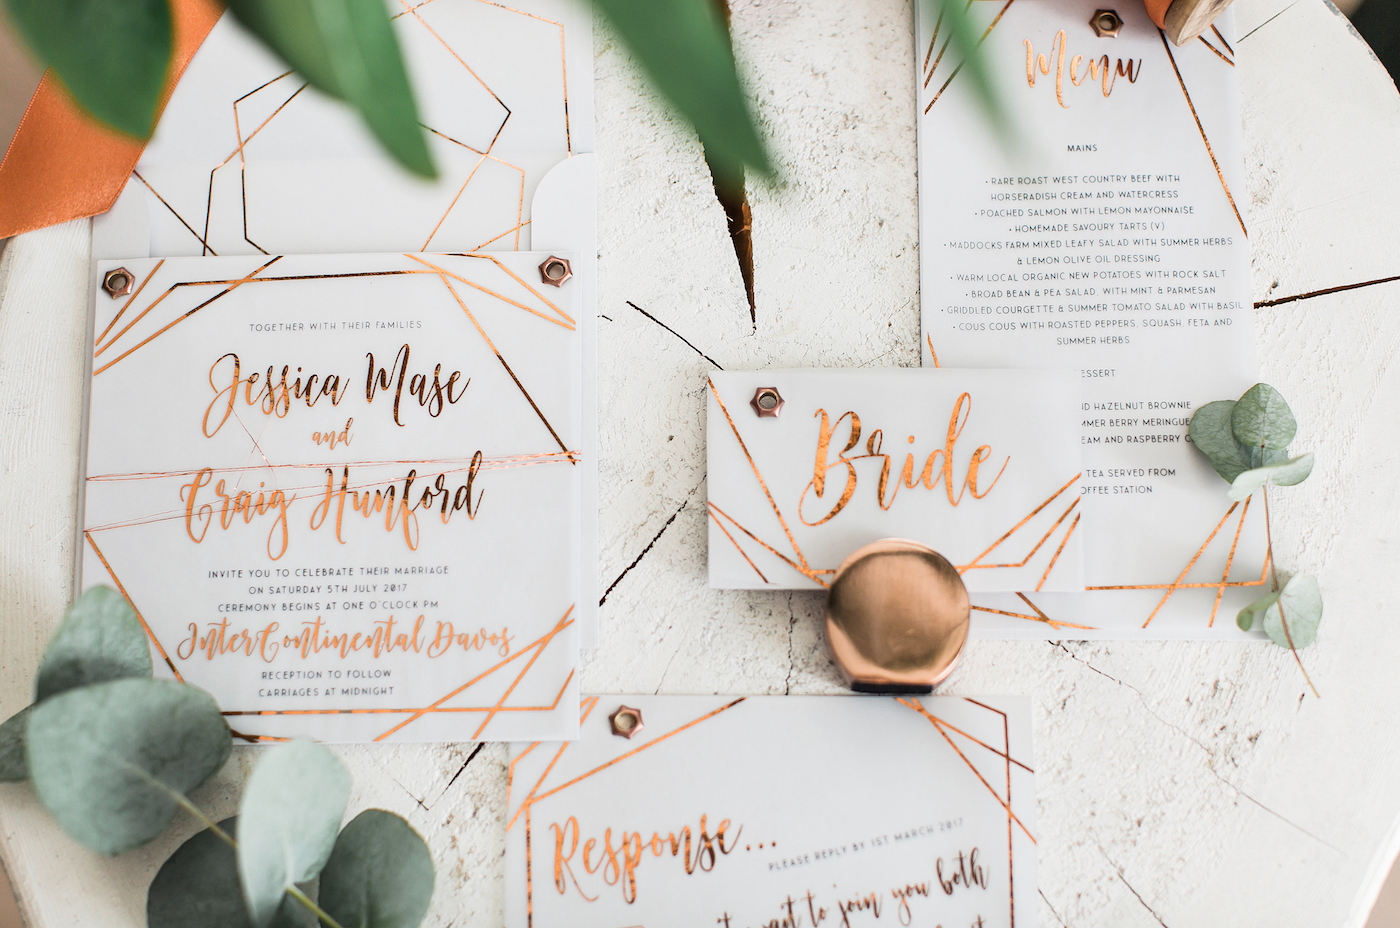 Wedding stationery with copper foiled details styled by international wedding planner Elisabetta White